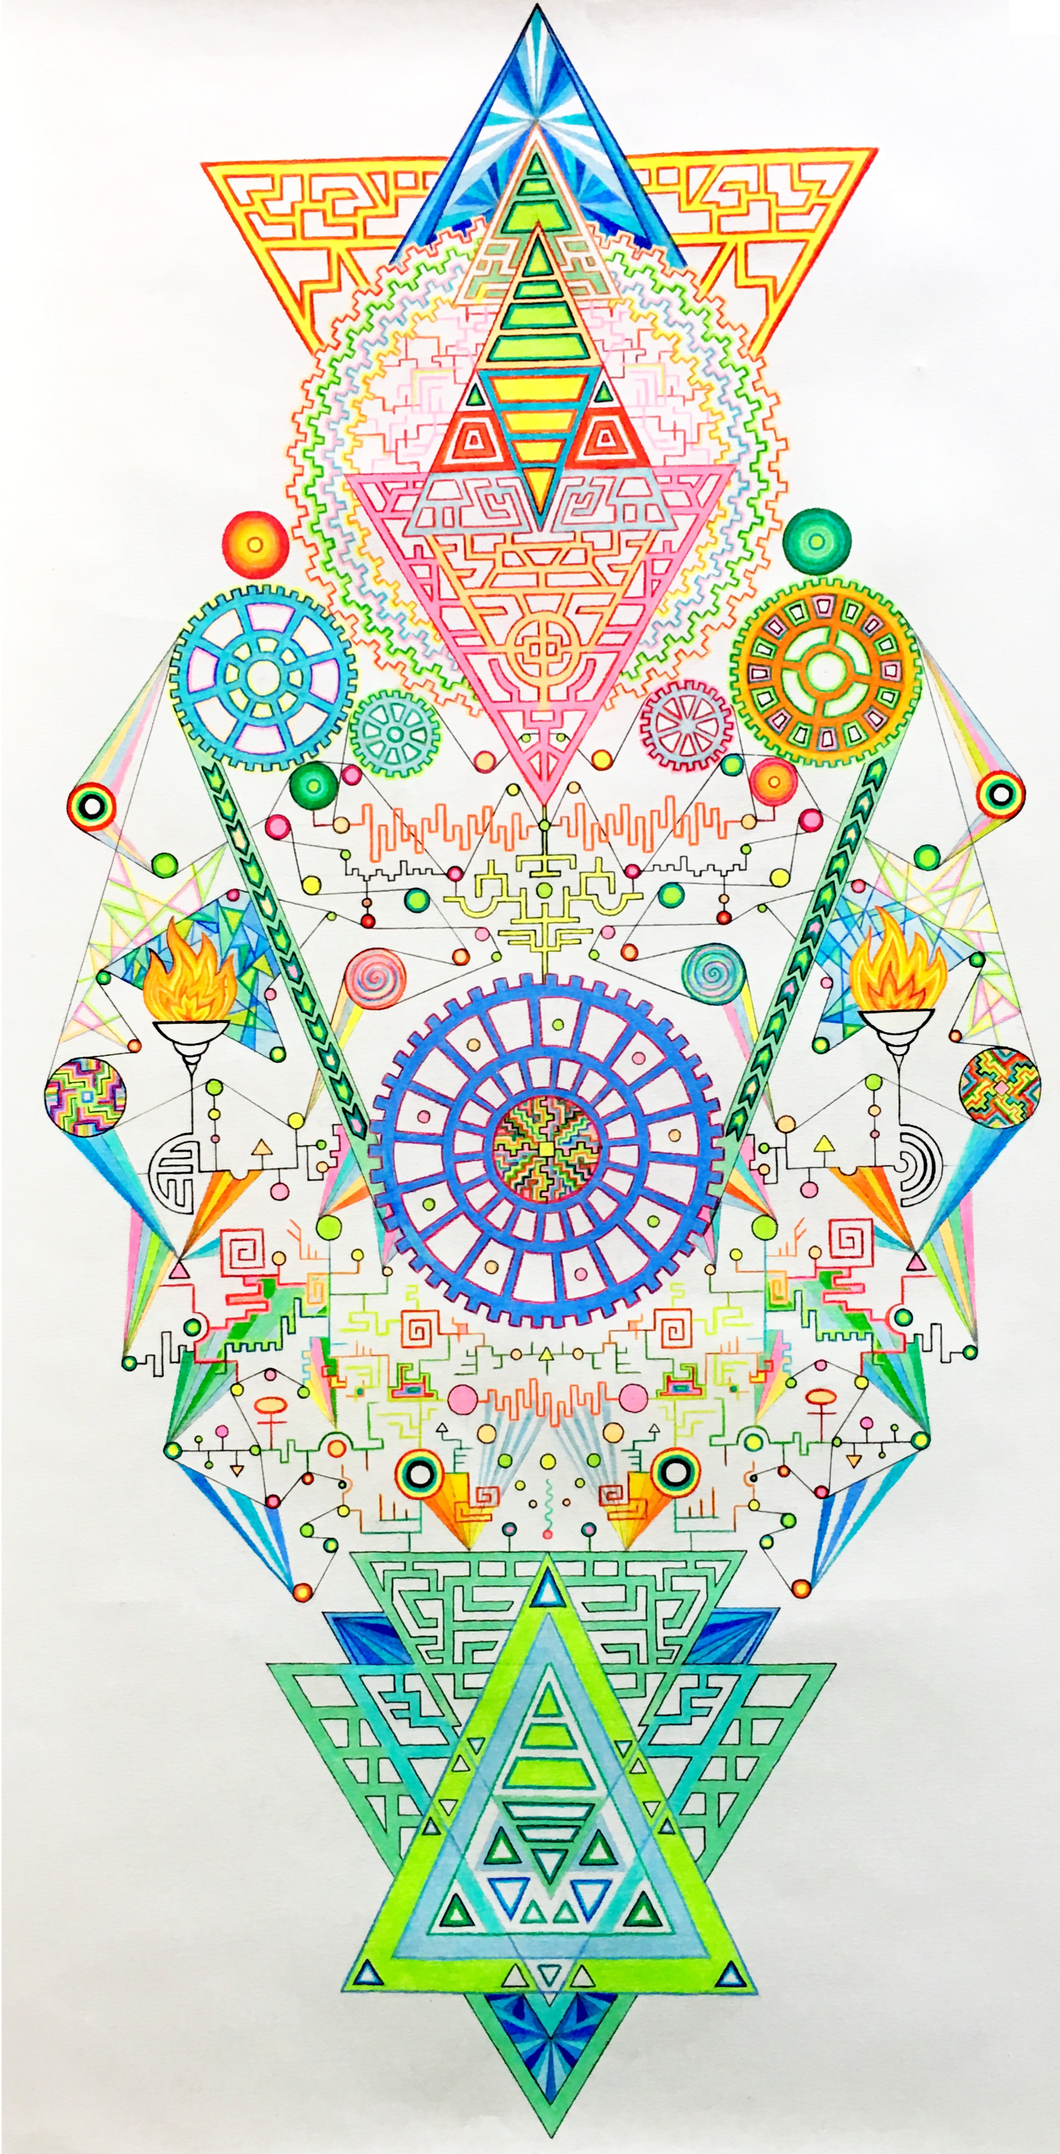 Giclée print: My Cosmic Happiness Generator